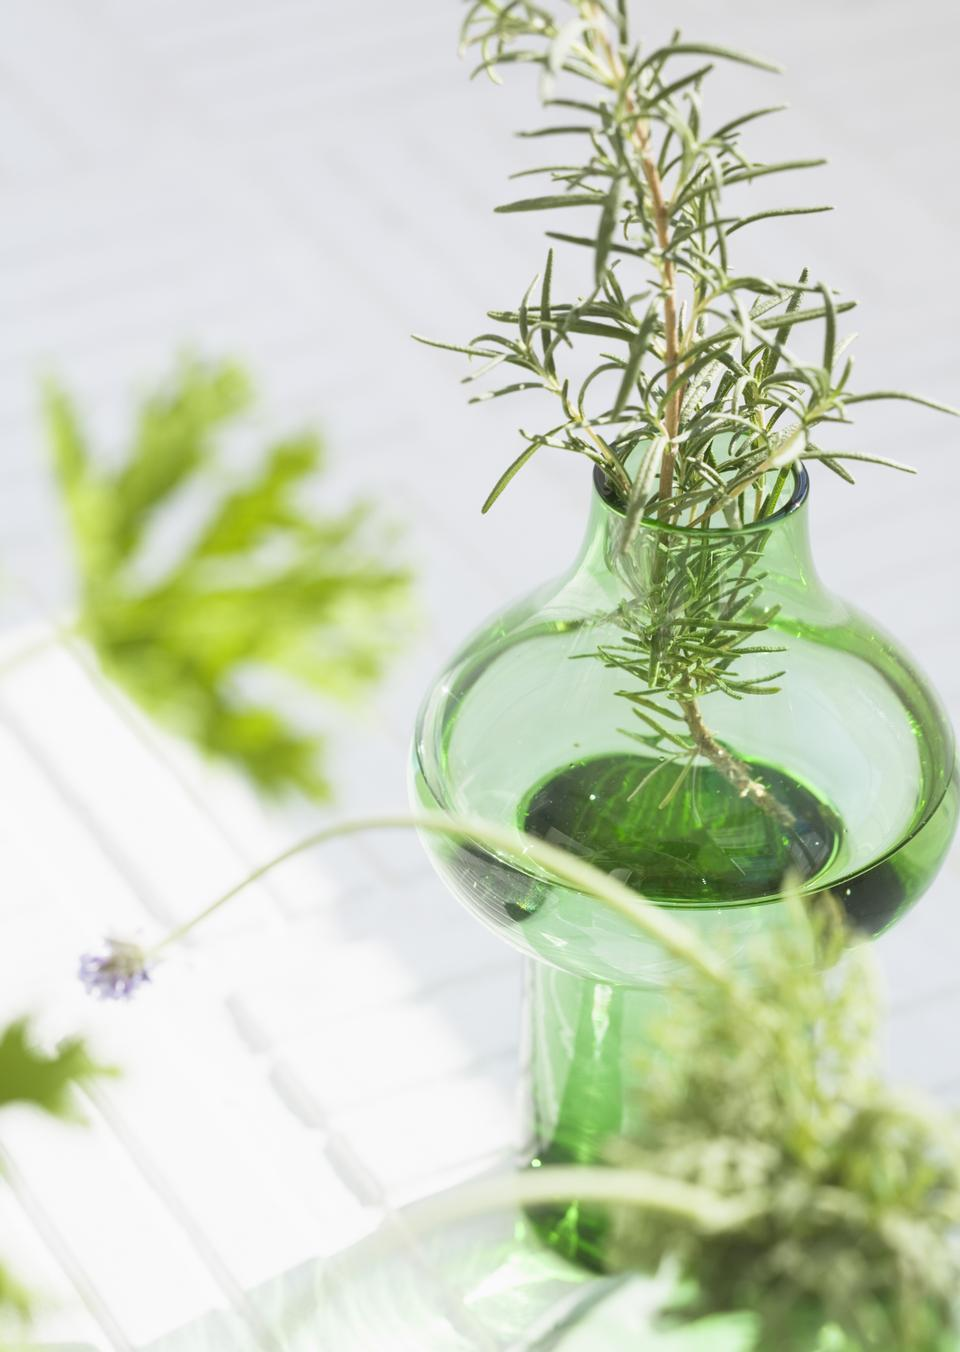 Fresh rosemary bound, and rosemary sprigs in a glass,